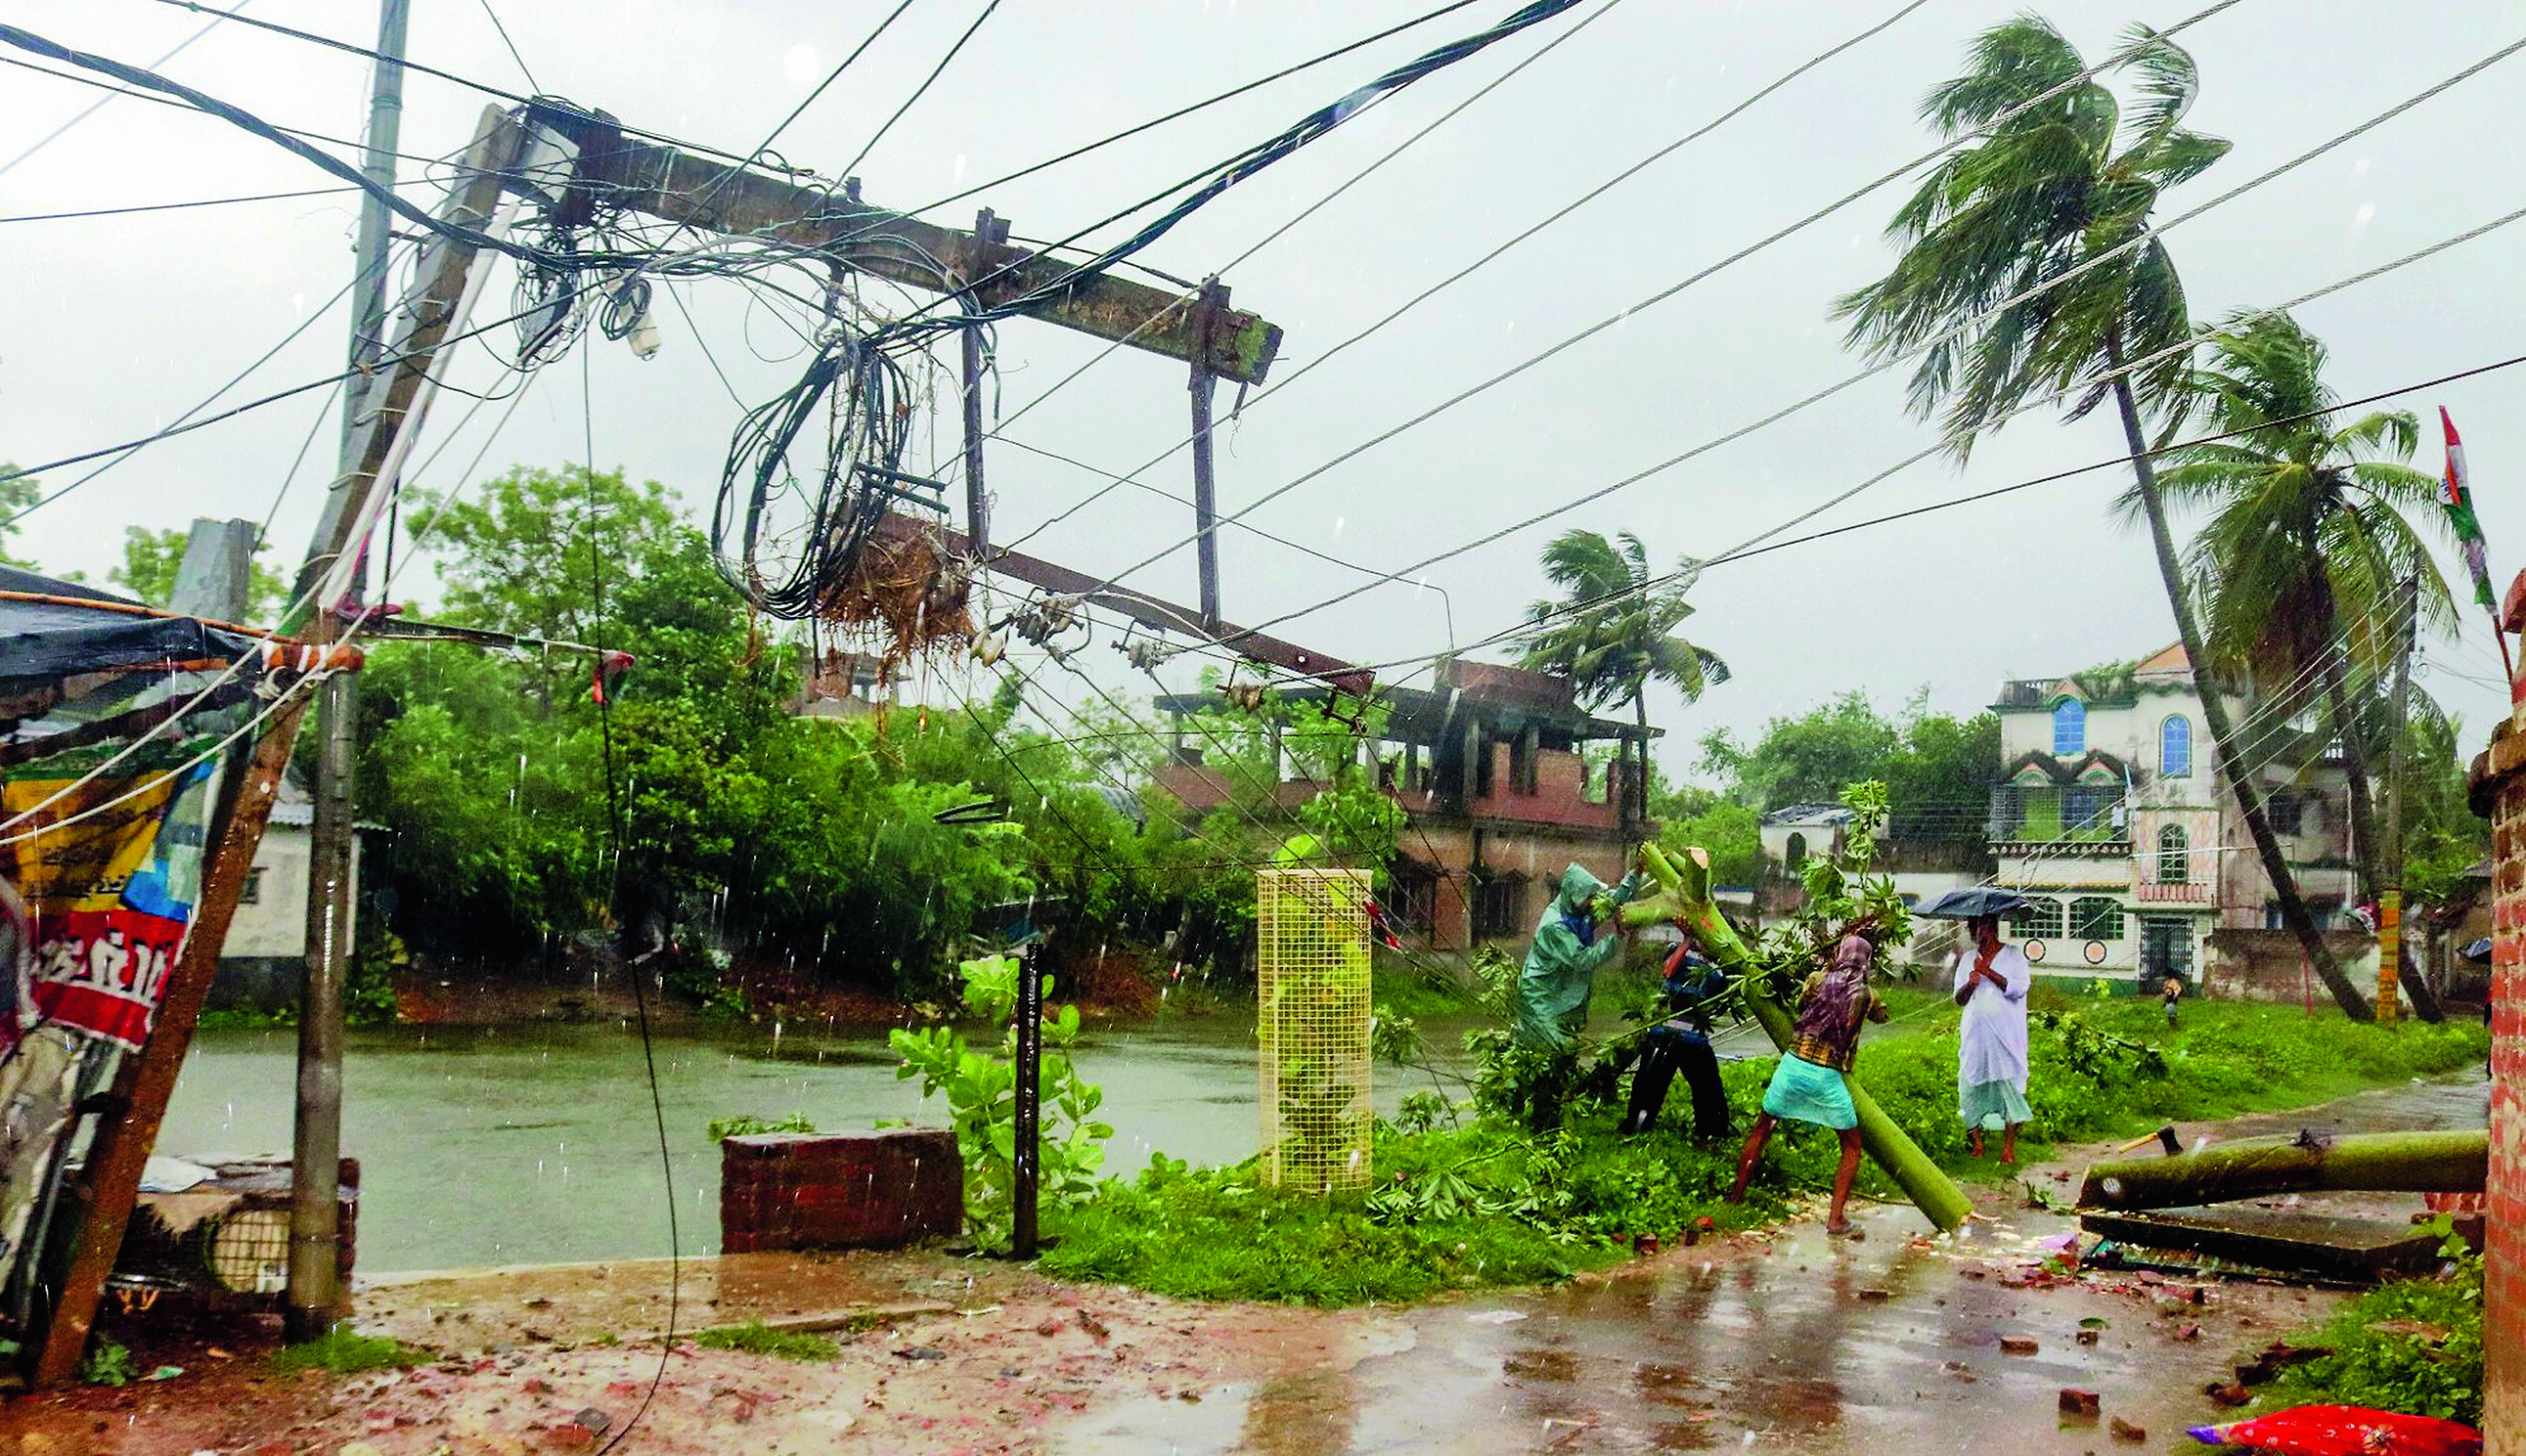 Workers try to restore a power line in Burdwan after a tree fell on it during the cyclone on Wednesday.